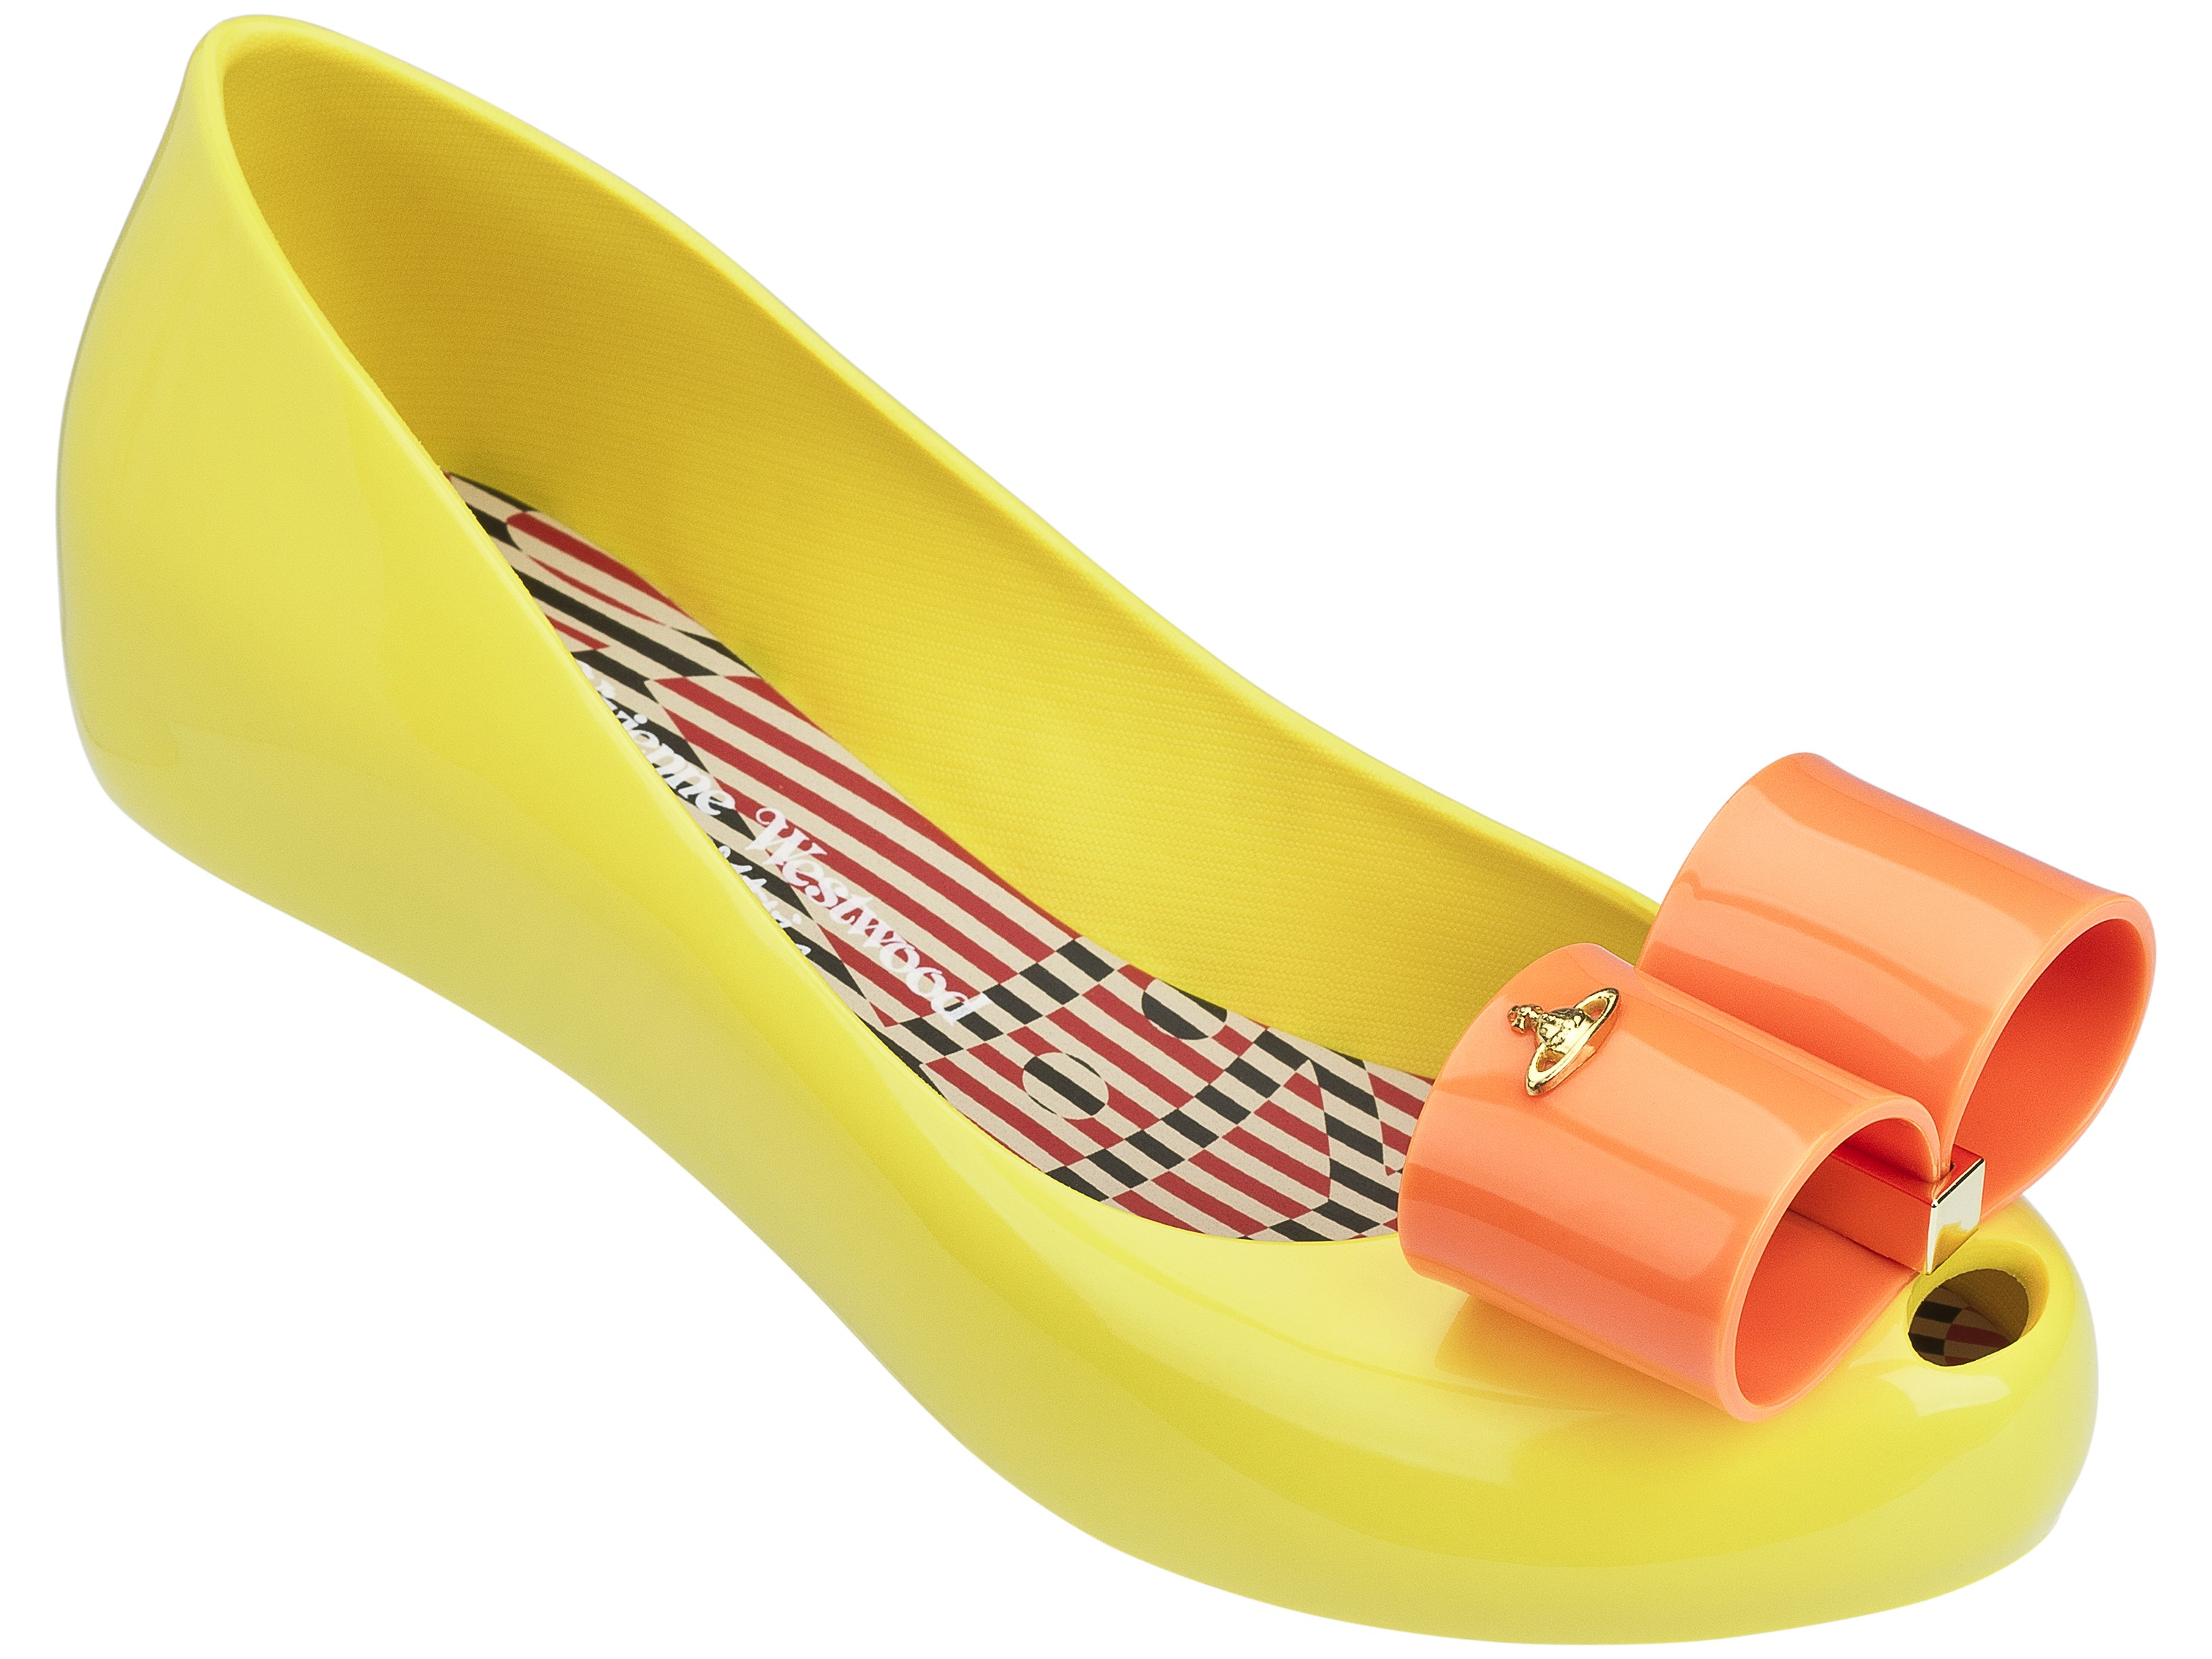 Vivienne Westwood Anglomania + Melissa Ultragirl XVII - Yellow / Orange